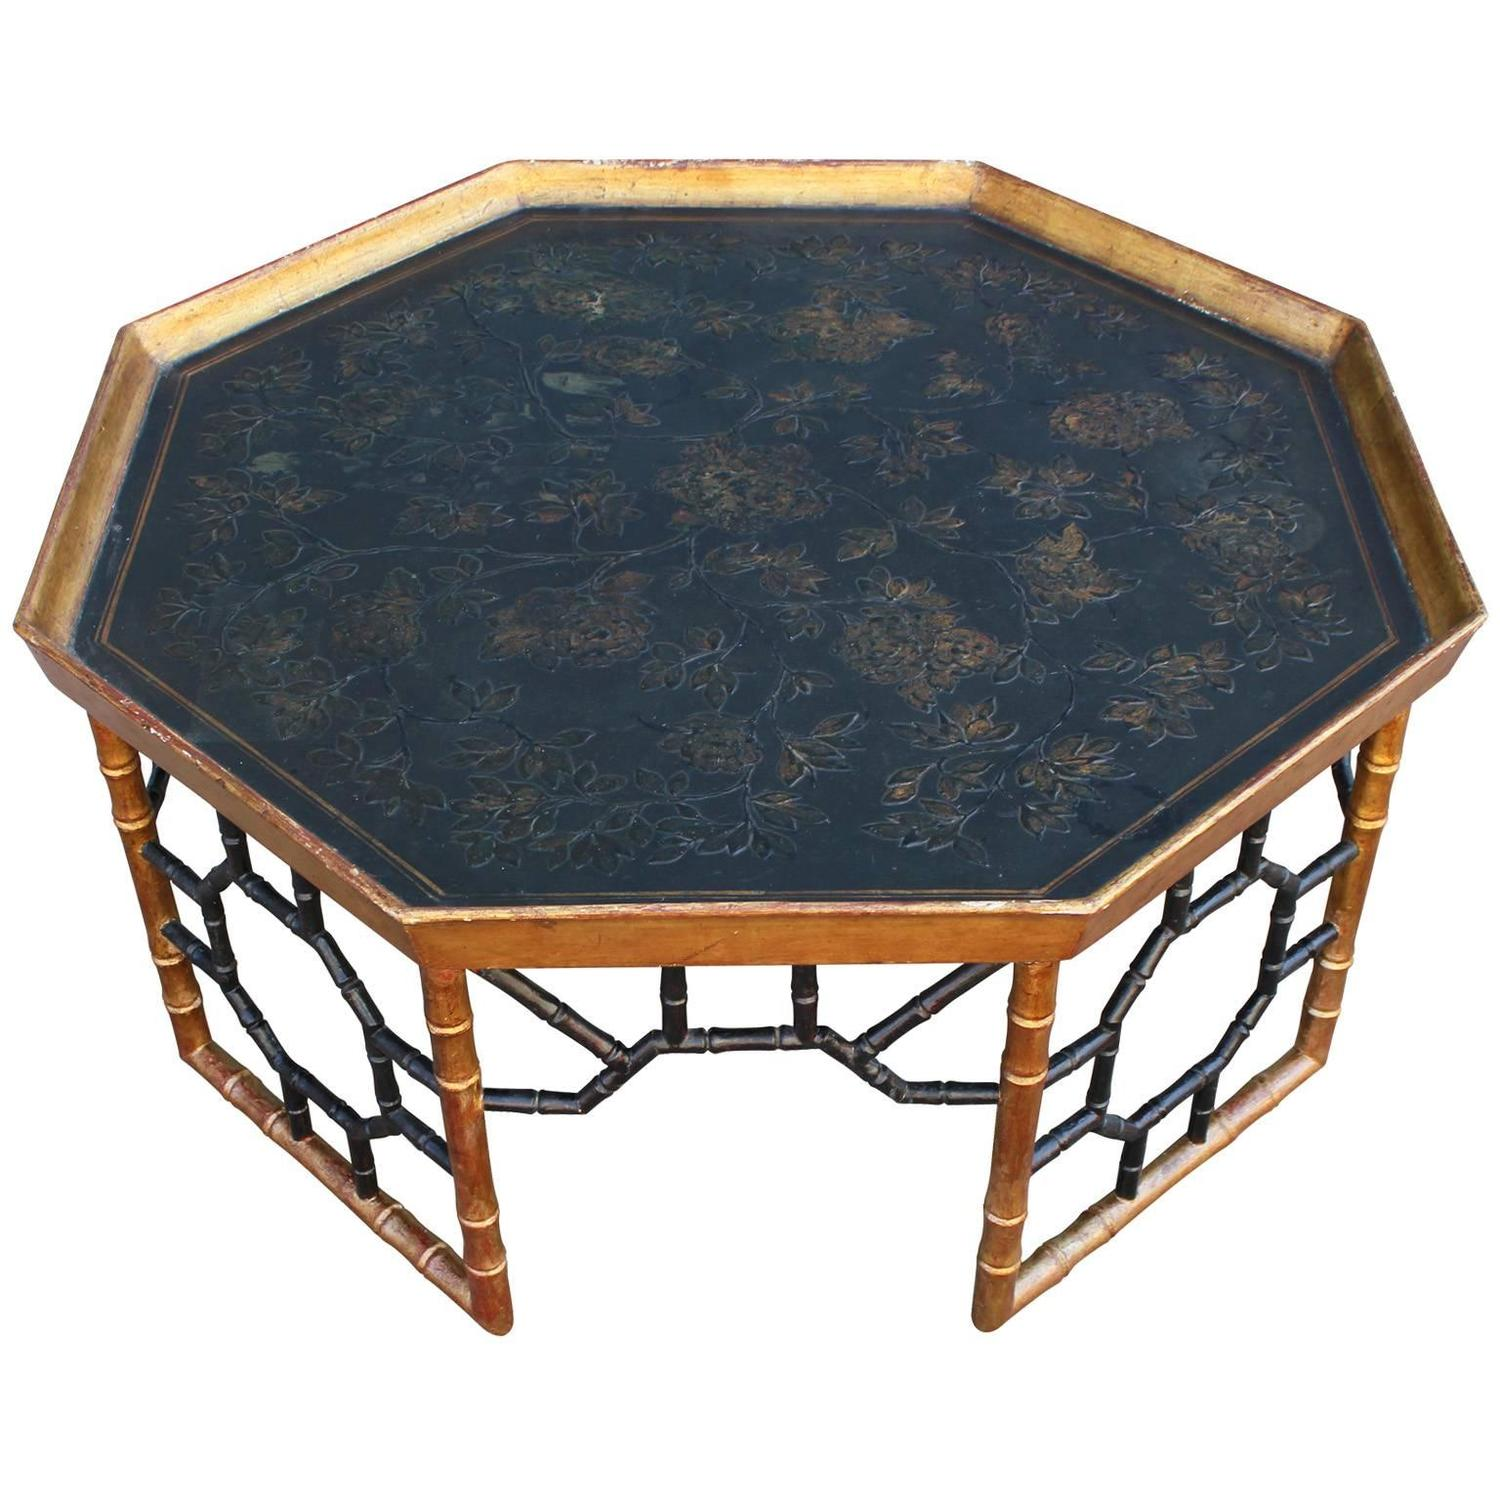 Elegant Italian Faux Bamboo Gold Leafed Tray Coffee Table At 1stdibs